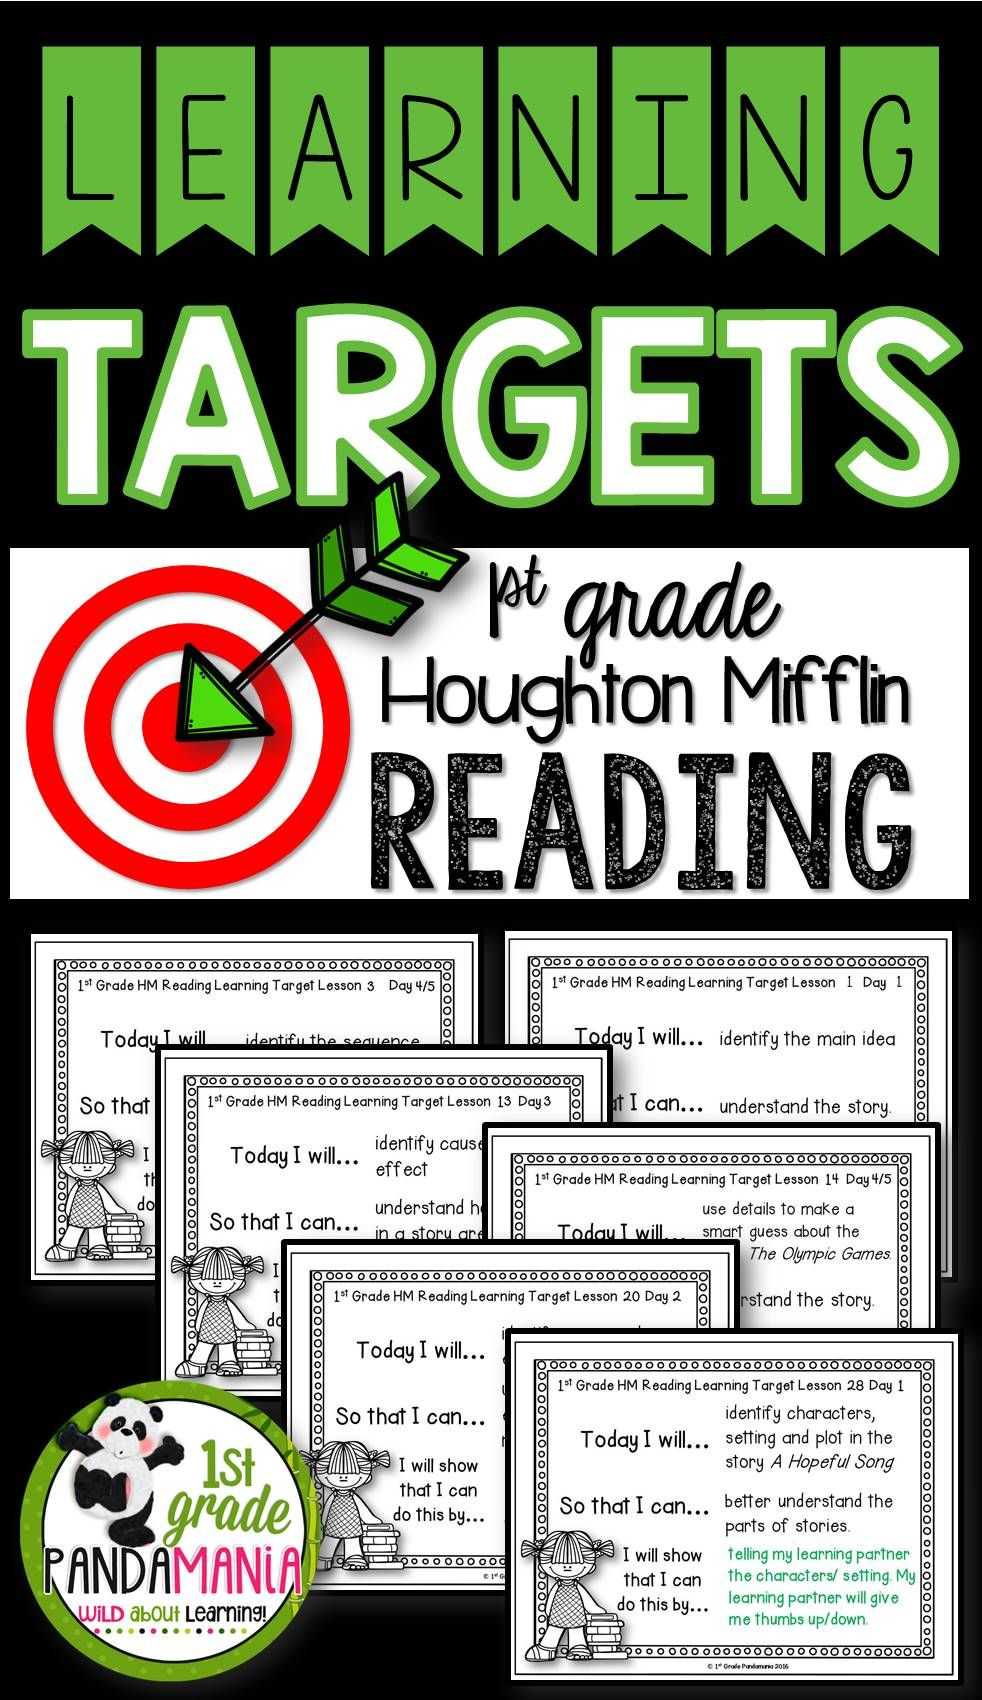 hight resolution of Learning Target Posters for the Year! Houghton Mifflin Journeys 2011  Reading for 1st Grade. Post daily Learning Int…   Learning targets